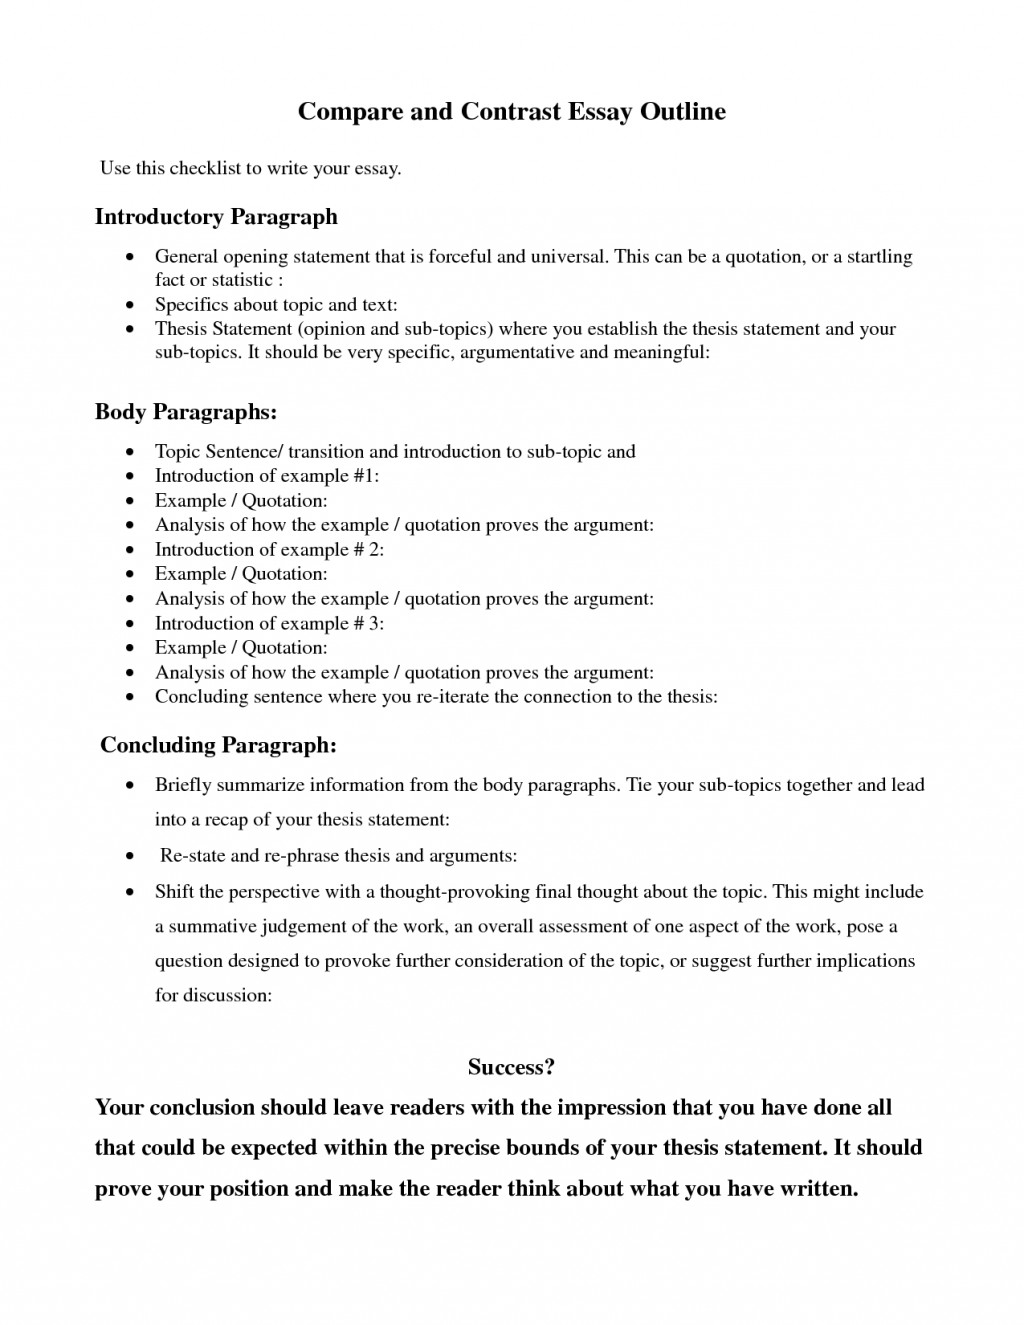 001 Compare And Contrast Essay Outline Example Magnificent Apa Format Examples Large